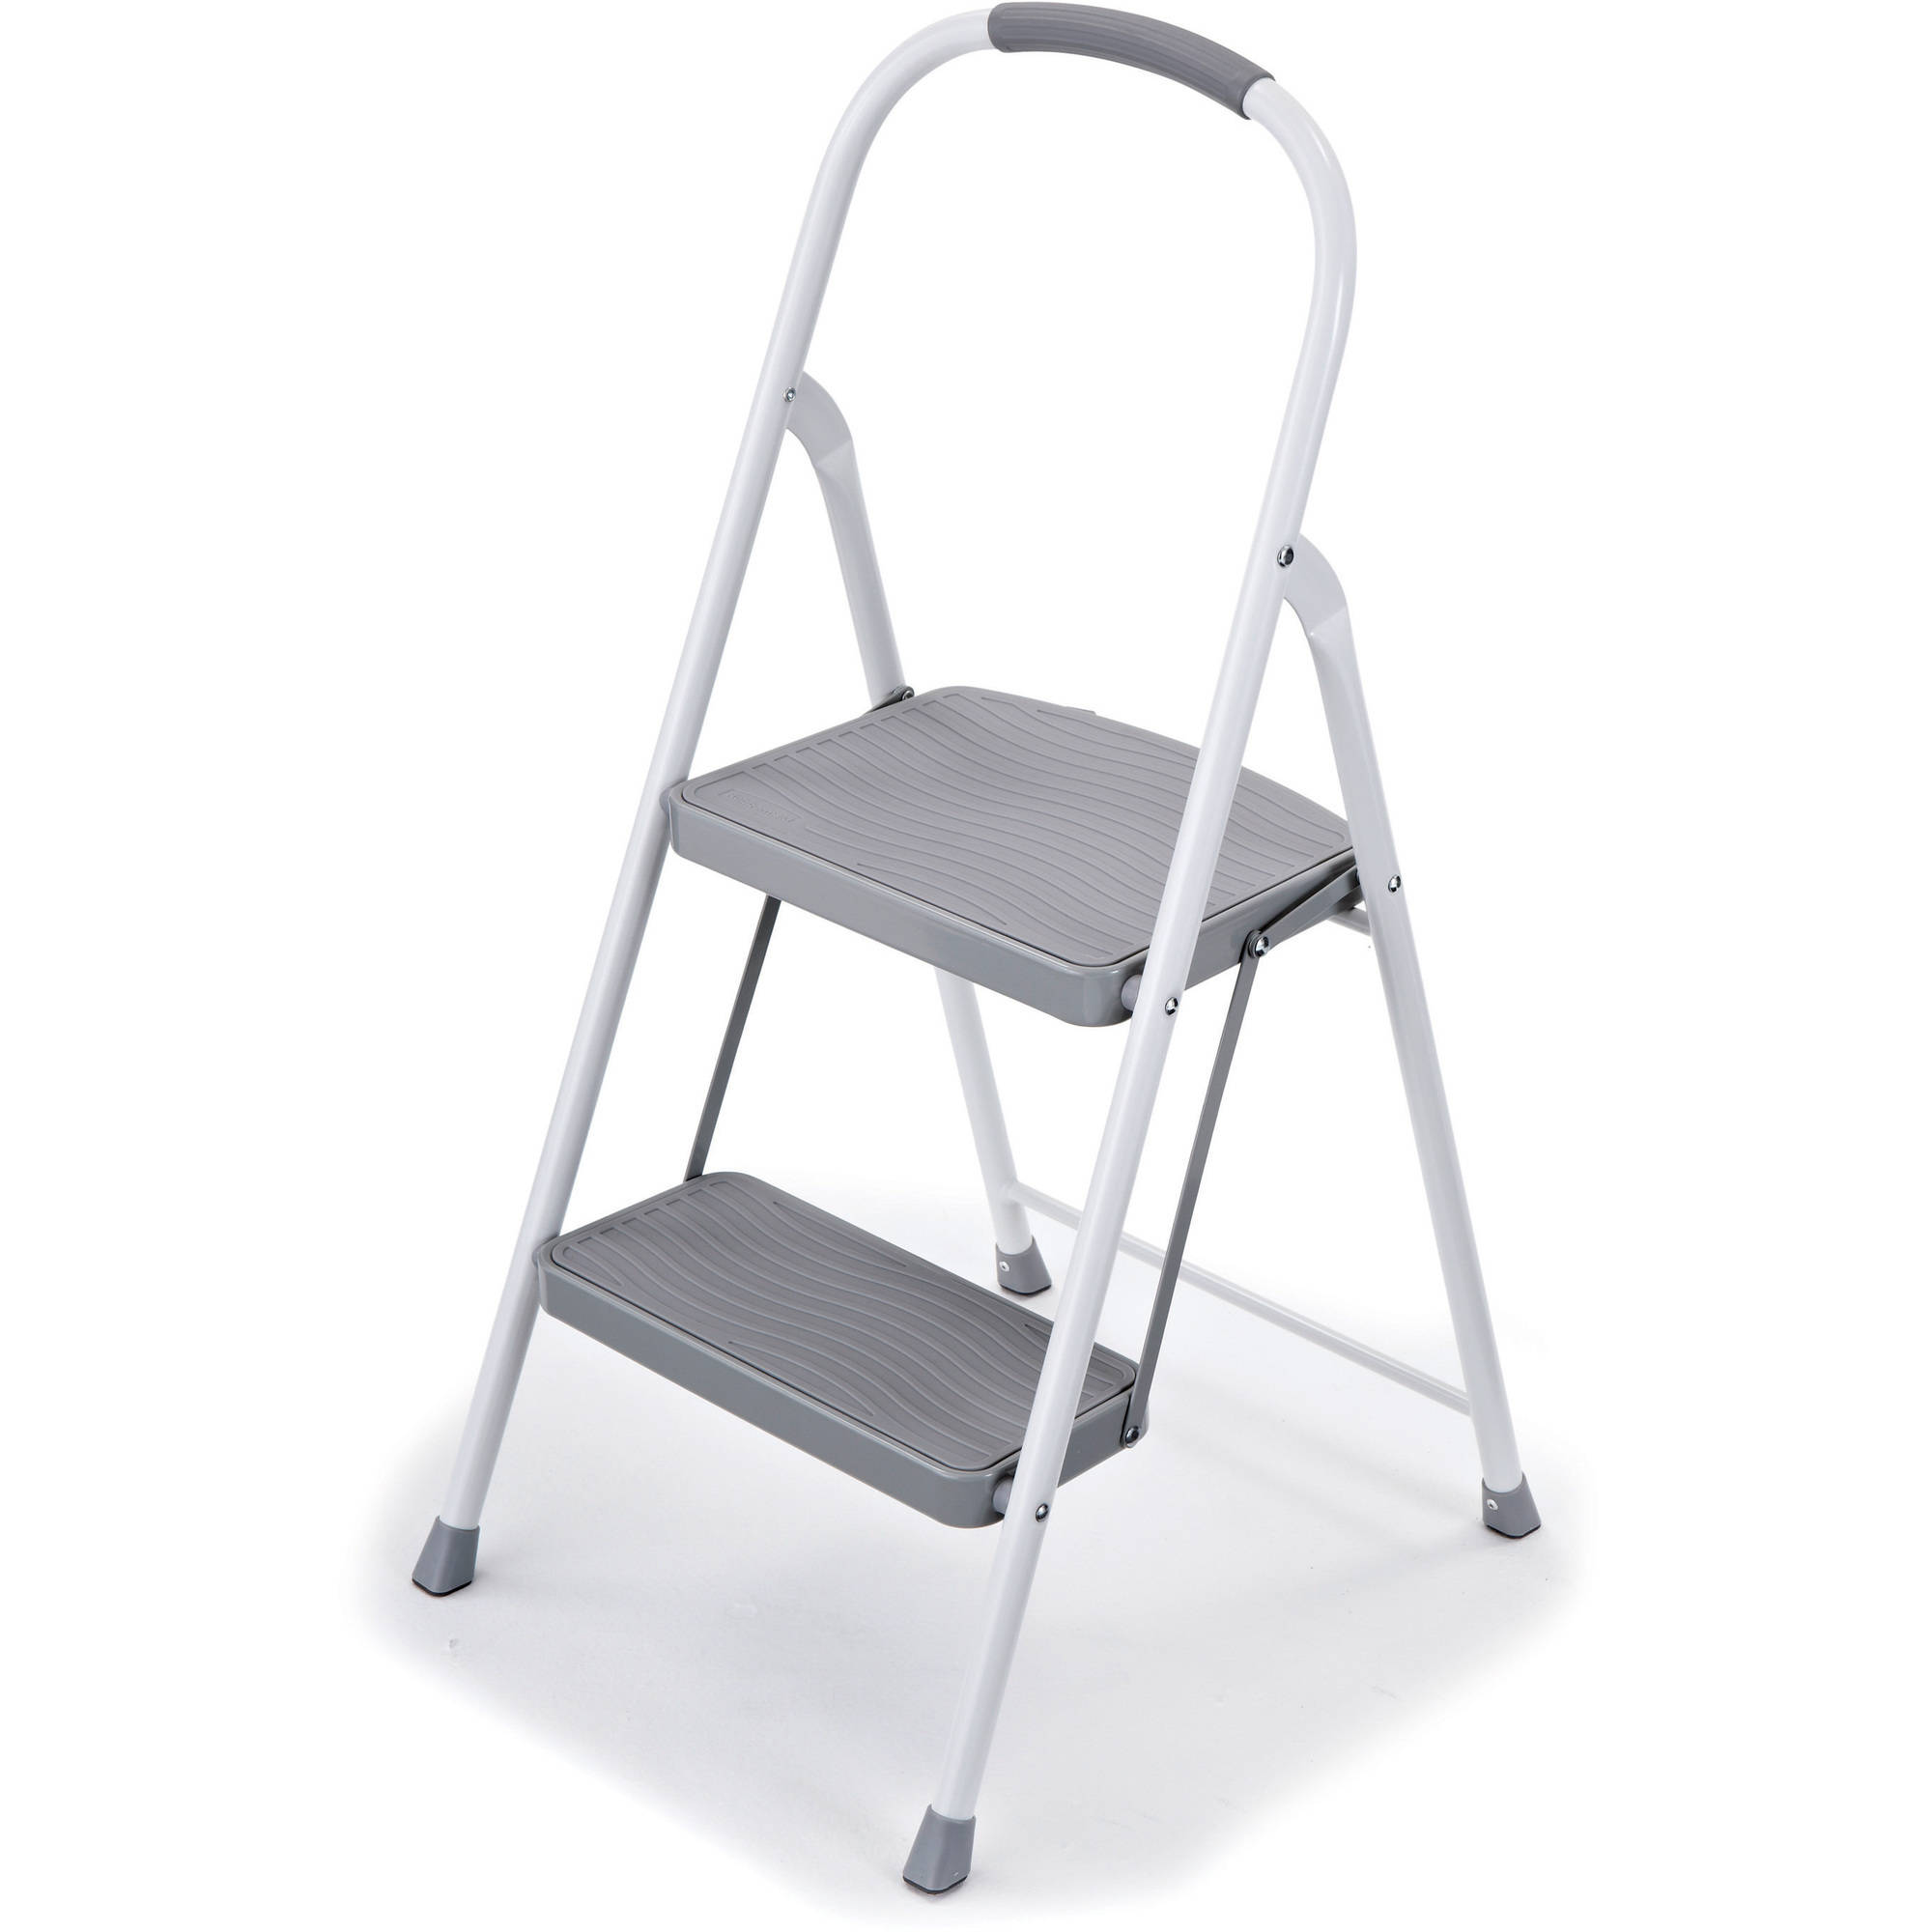 Superb Rubbermaid 2 Step Steel Step Stool Creativecarmelina Interior Chair Design Creativecarmelinacom